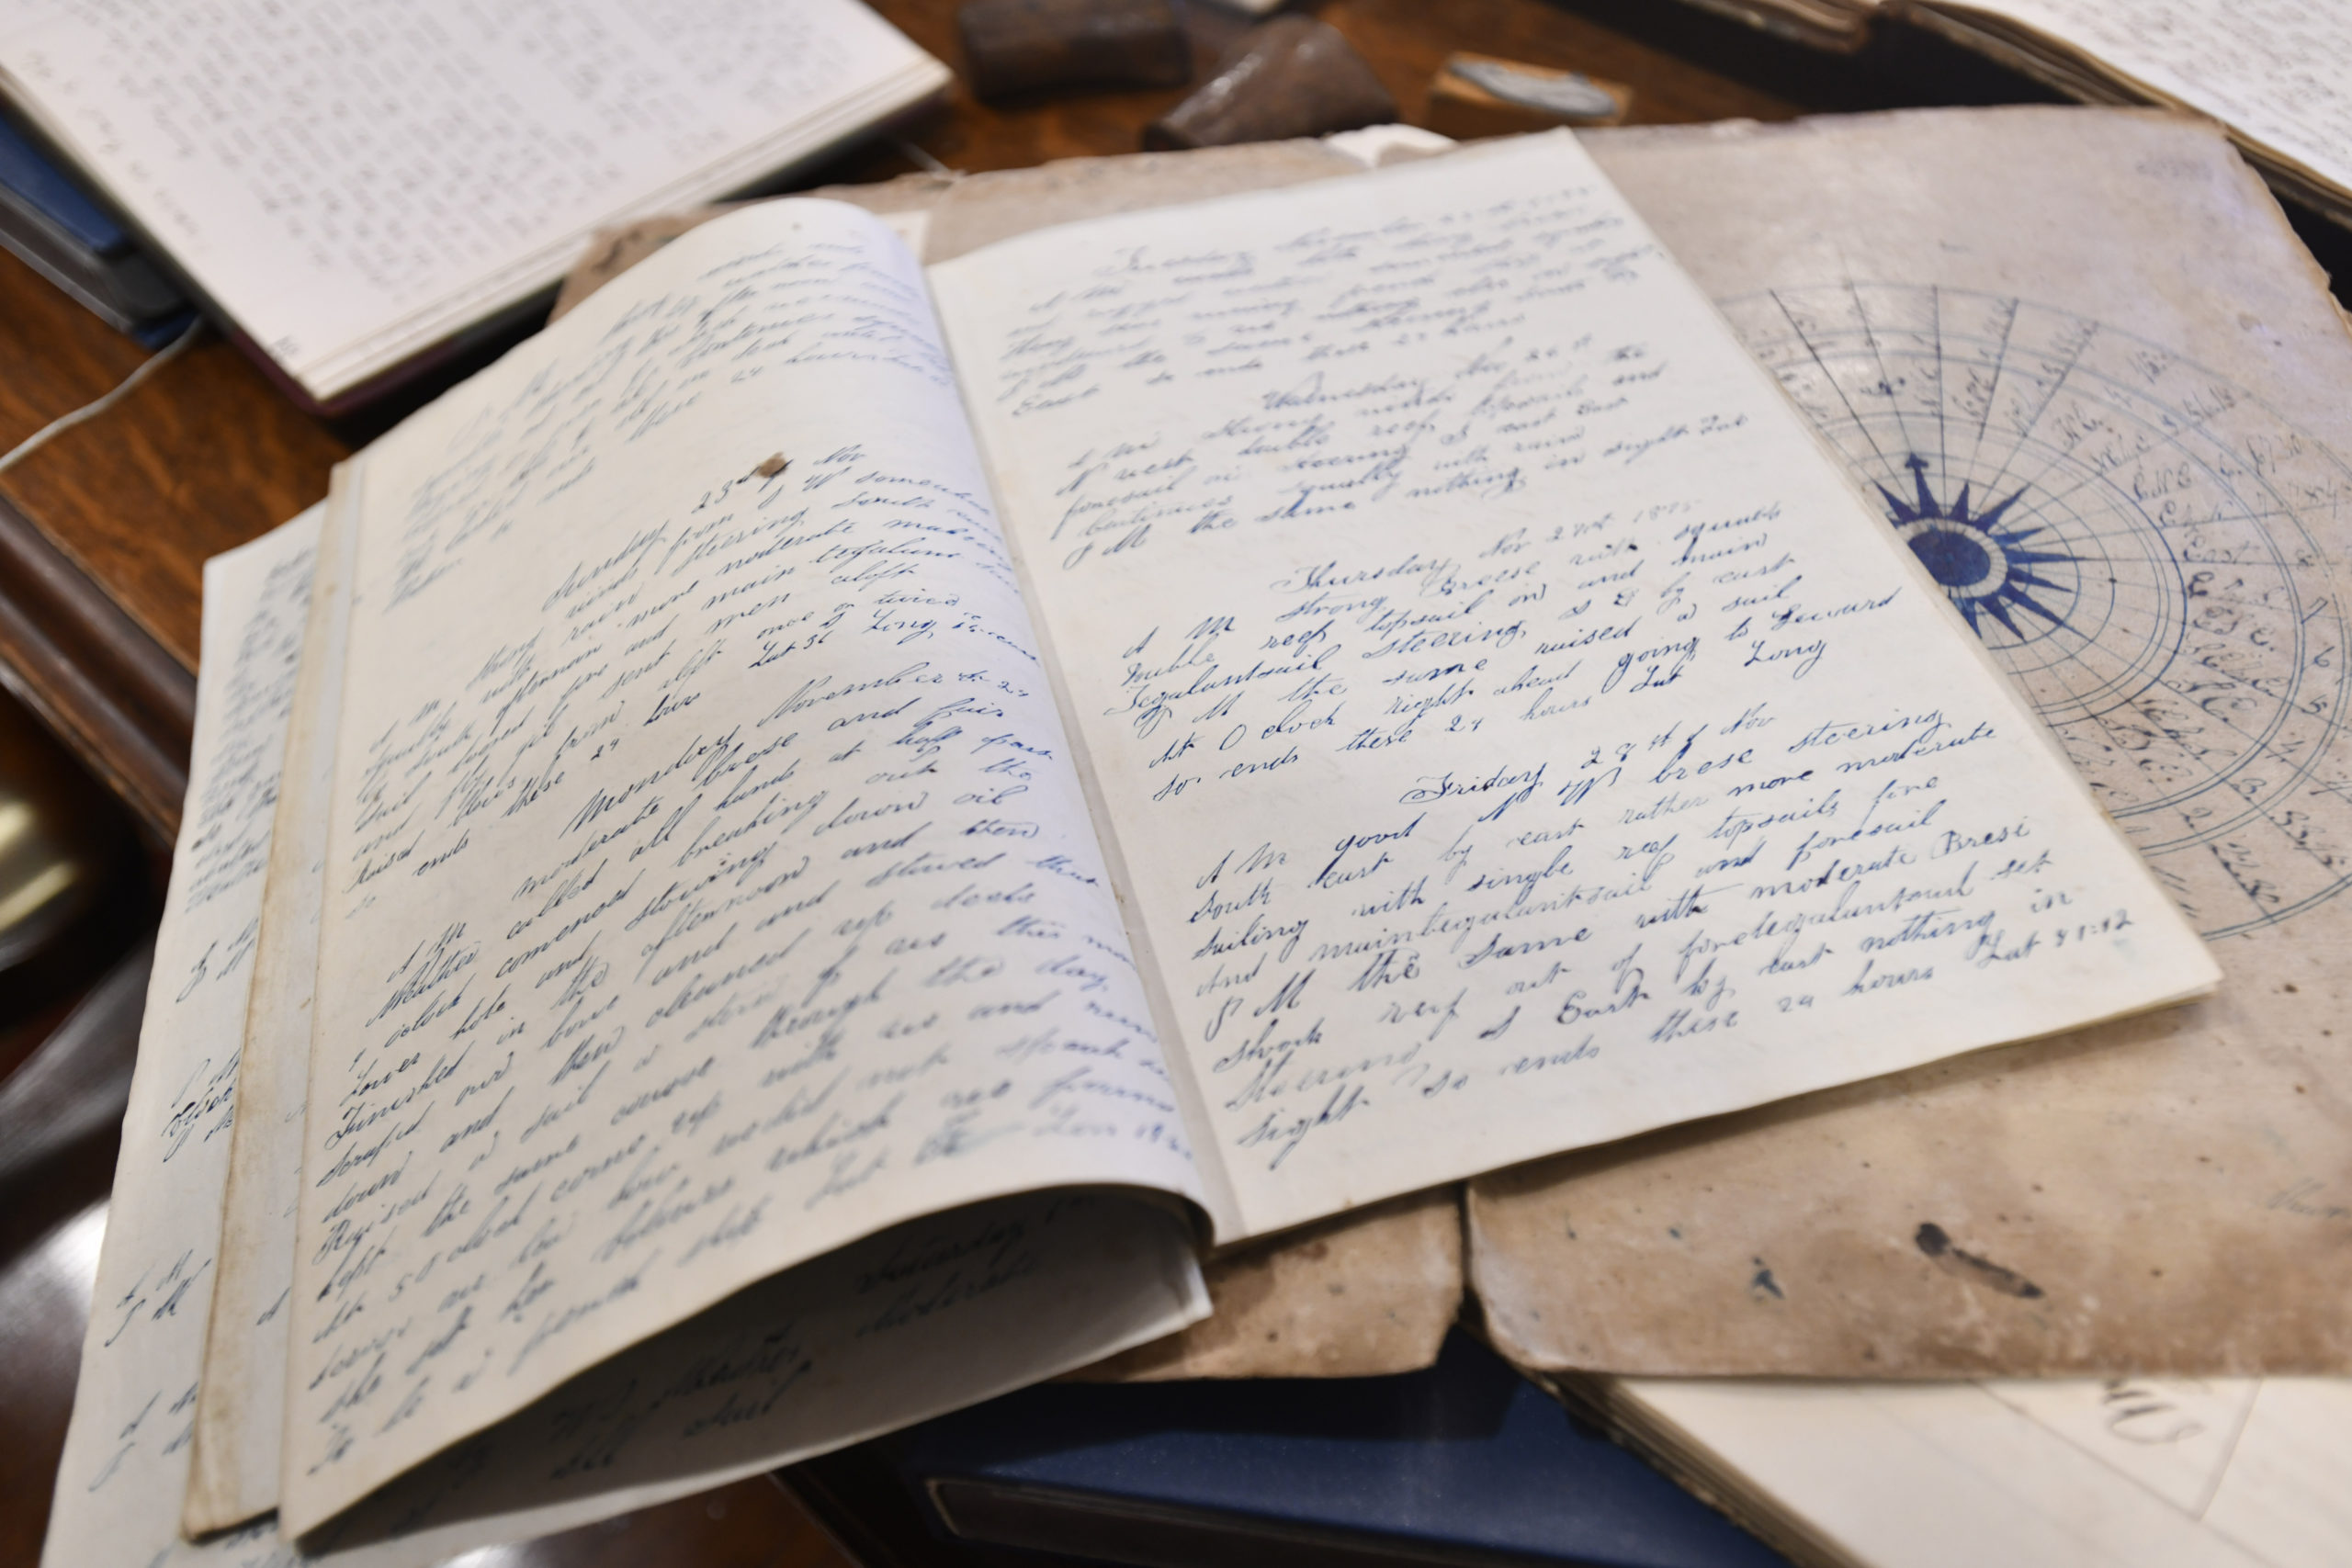 The log book from the Henry. The ship sailed out of Sag Harbor, on August 22, 1845 for whaling along the N.W. coast and returned May 24, 1847. The ship was sold in 1847.   DANA SHAW